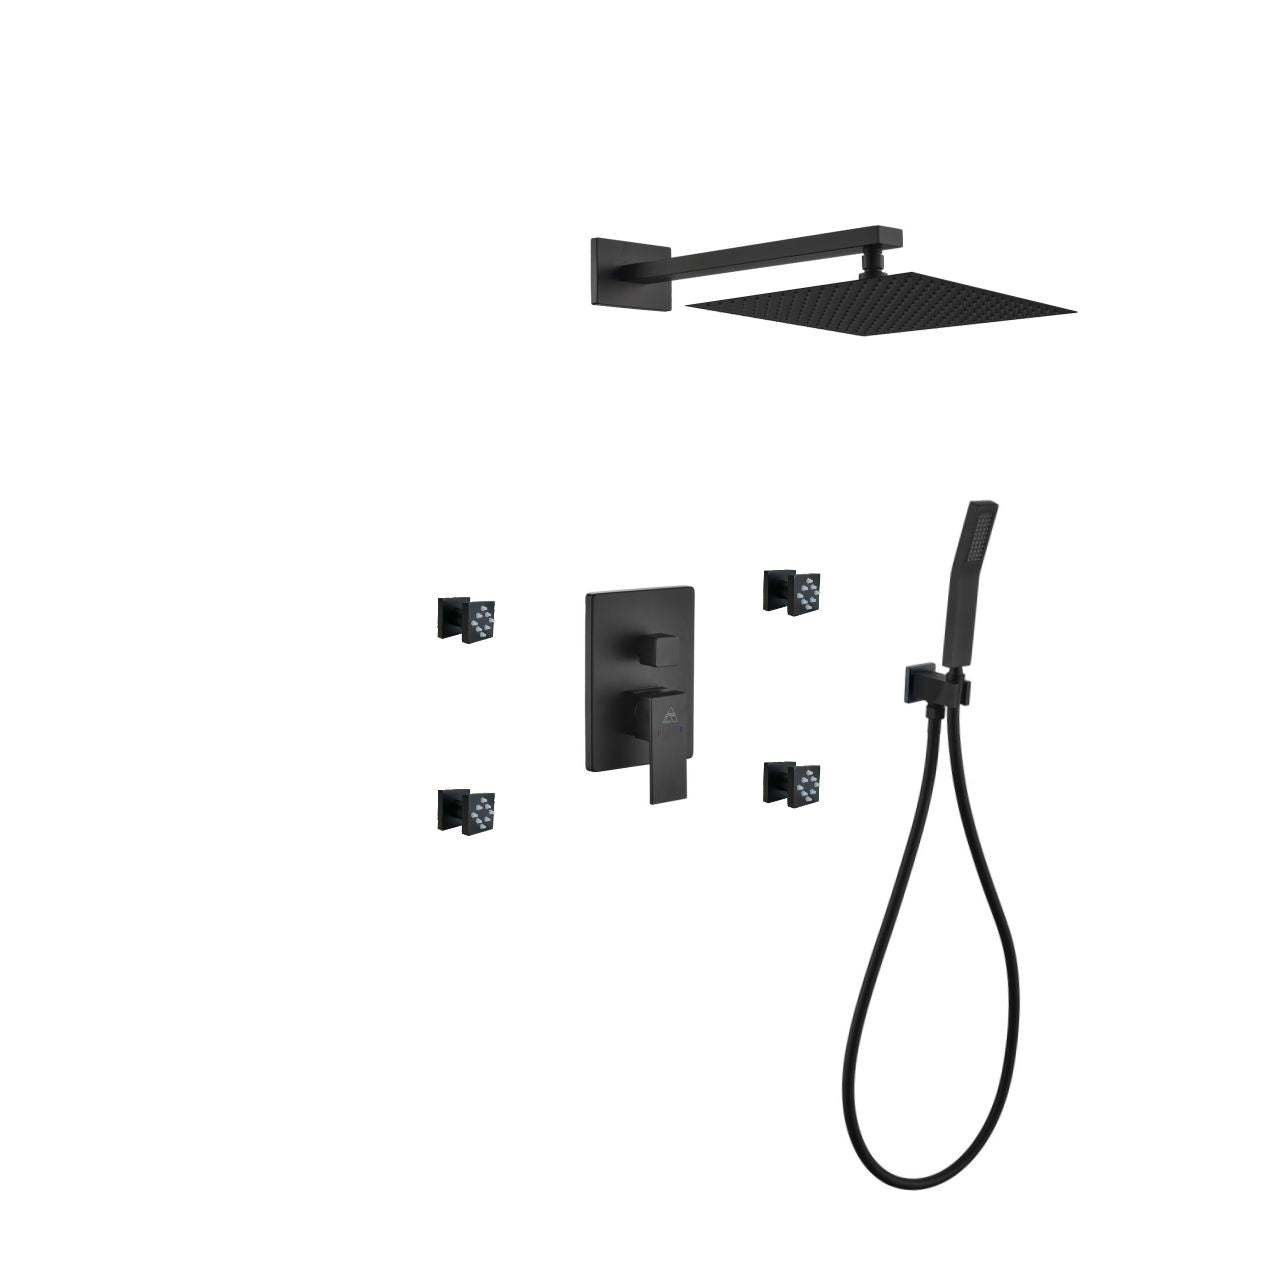 Aqua Piazza- Matt Black Shower Faucet With 12″ Square Rain Shower, Handheld and 4 Body Jets - CCSUPPLY INC.